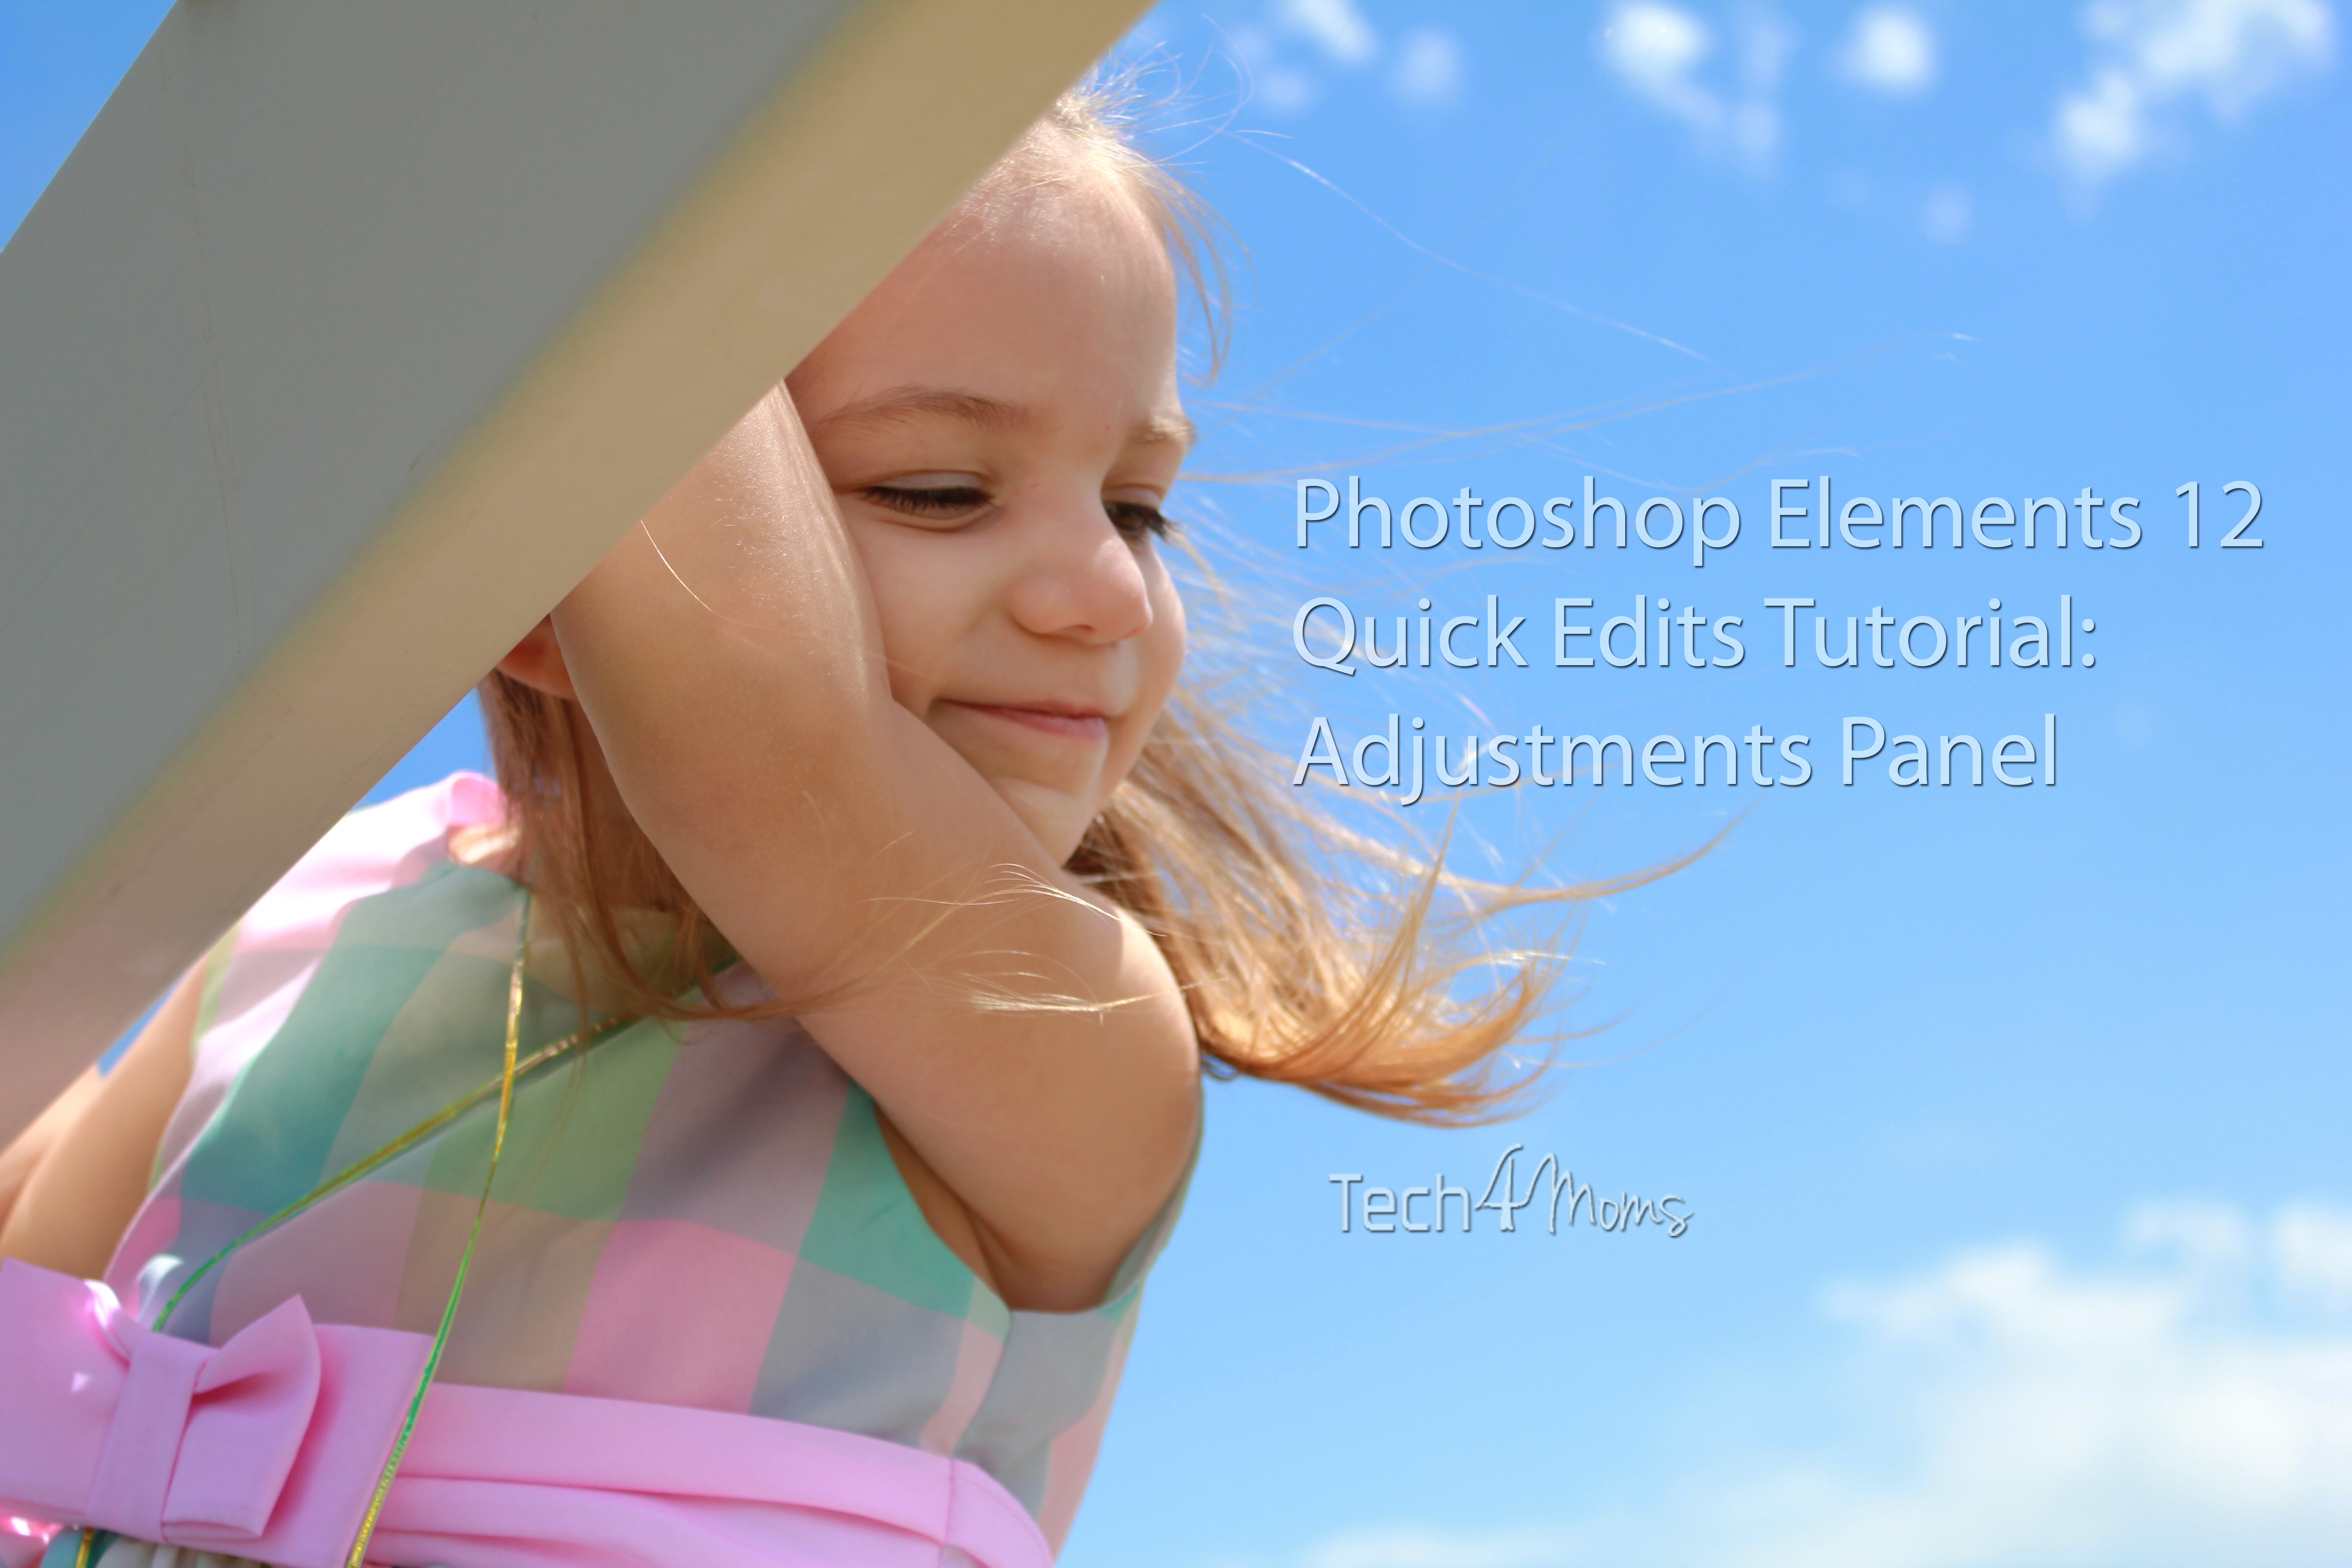 How to fine tune your photos for big results with photoshop how to fine tune your photos for big results with photoshop elements 12 family tech zone baditri Gallery